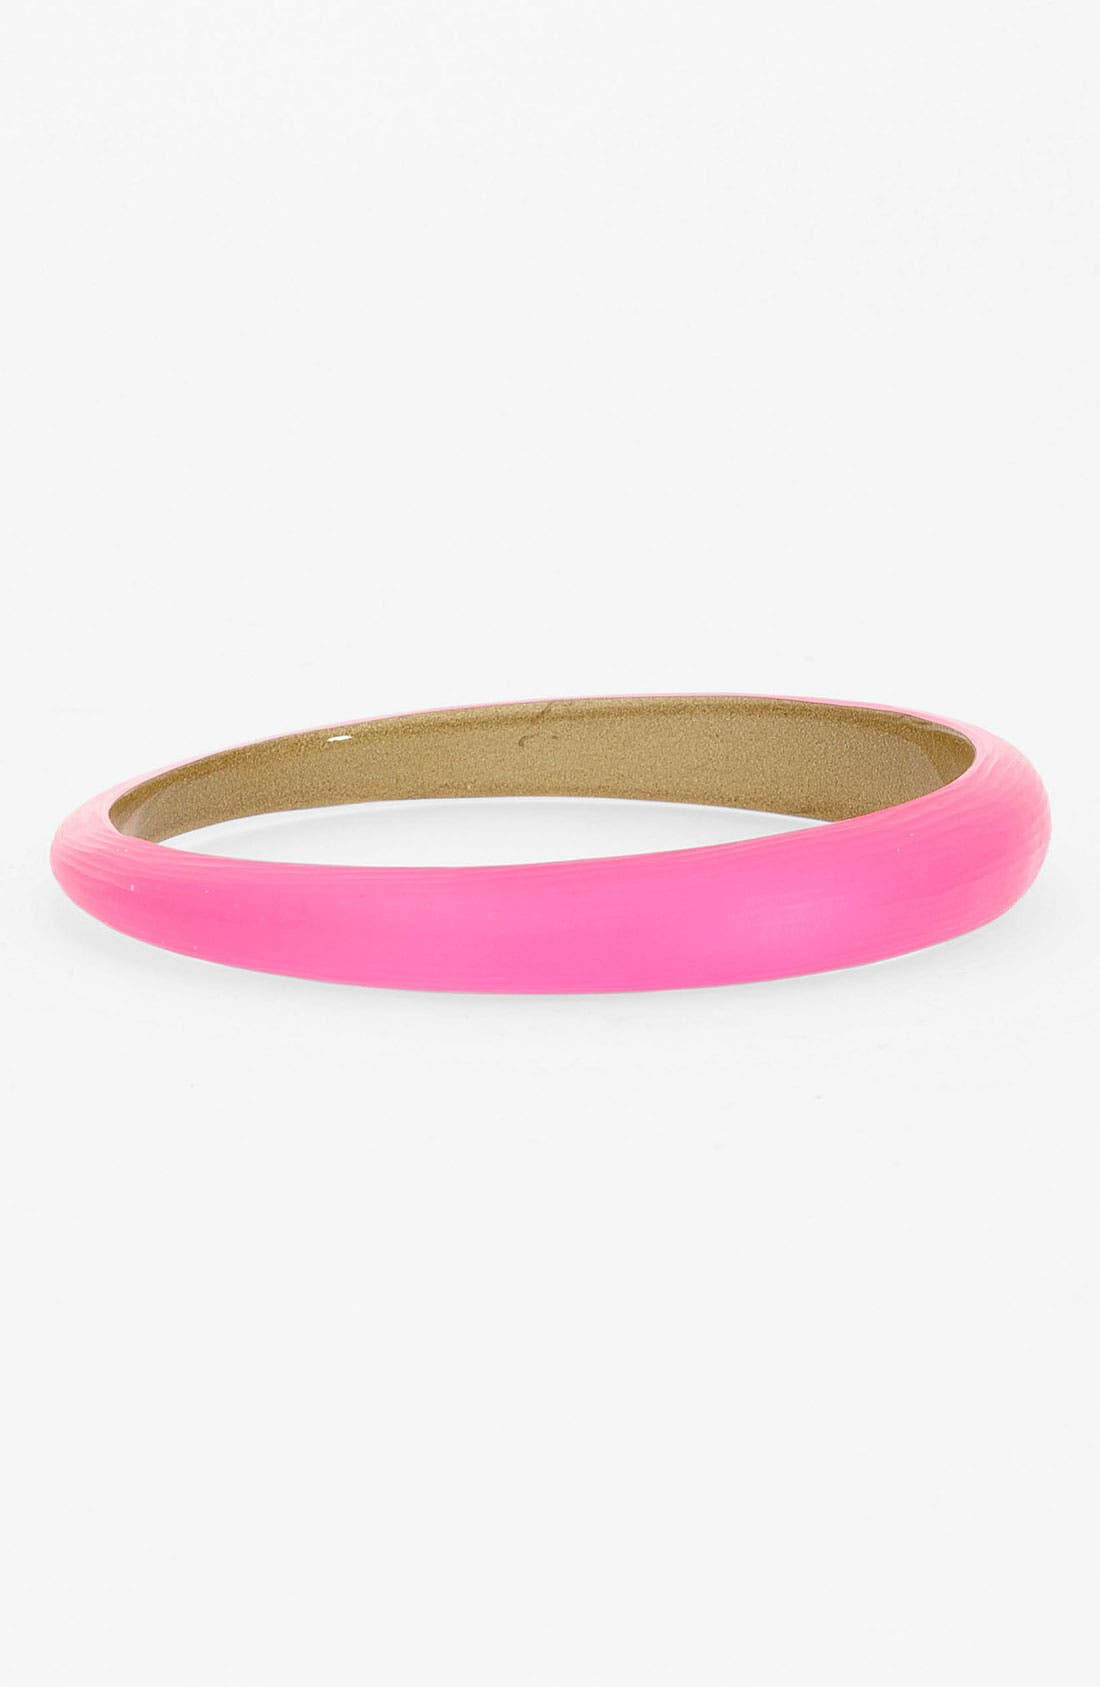 Alternate Image 1 Selected - Alexis Bittar Skinny Tapered Bangle